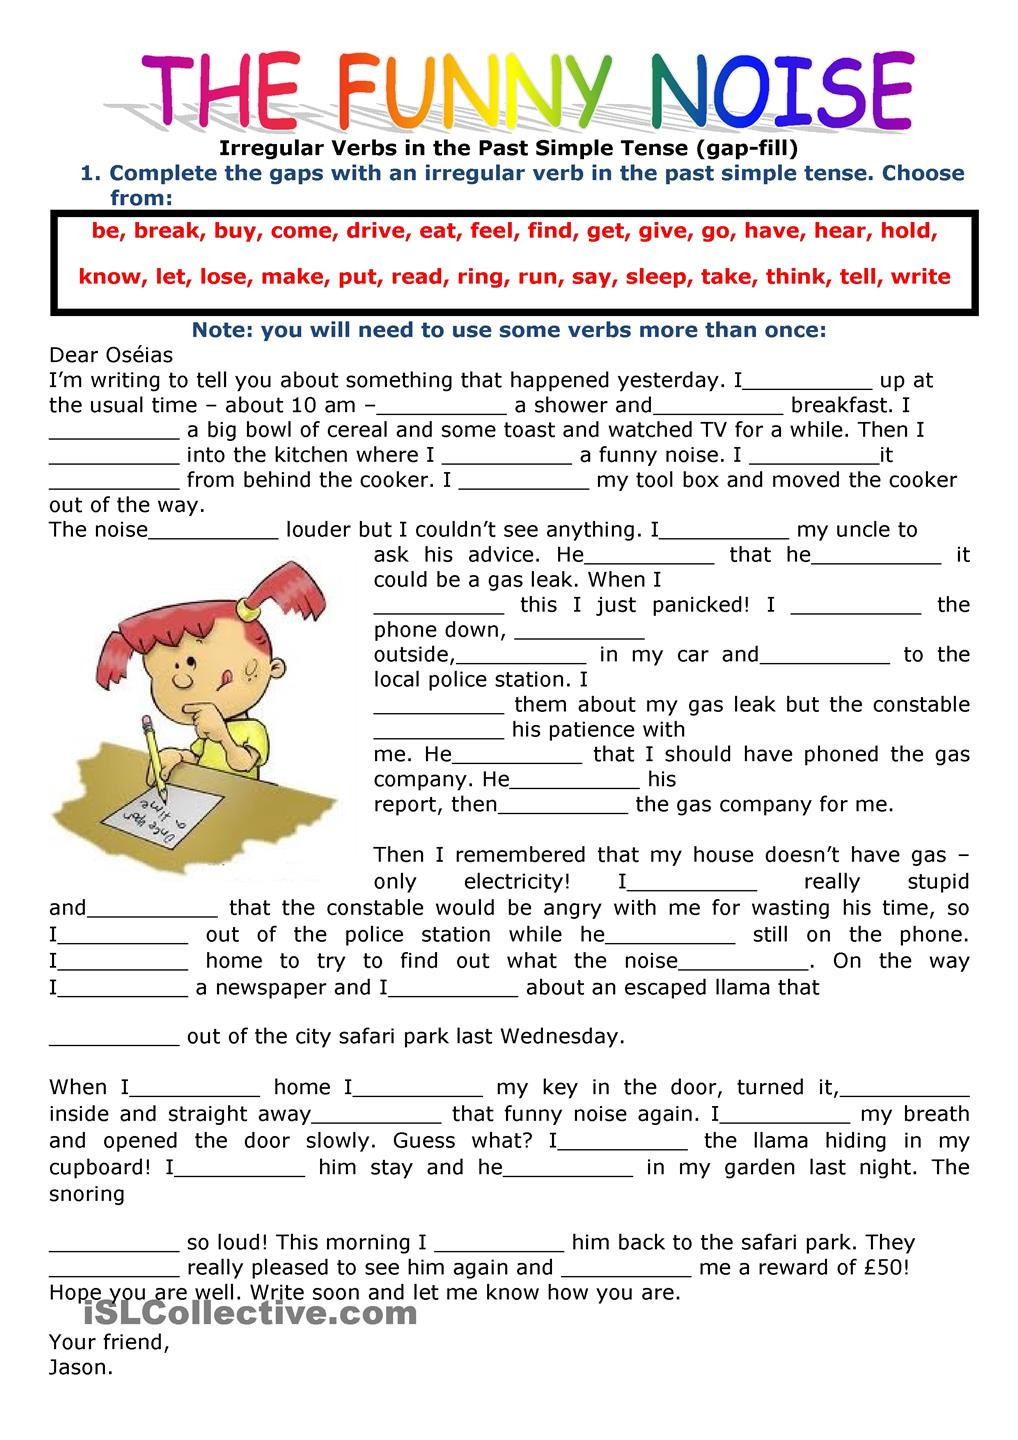 Worksheet Simple Reading Comprehension reading comprehension exercises for simple present math worksheet lampe past and continuous grammar for